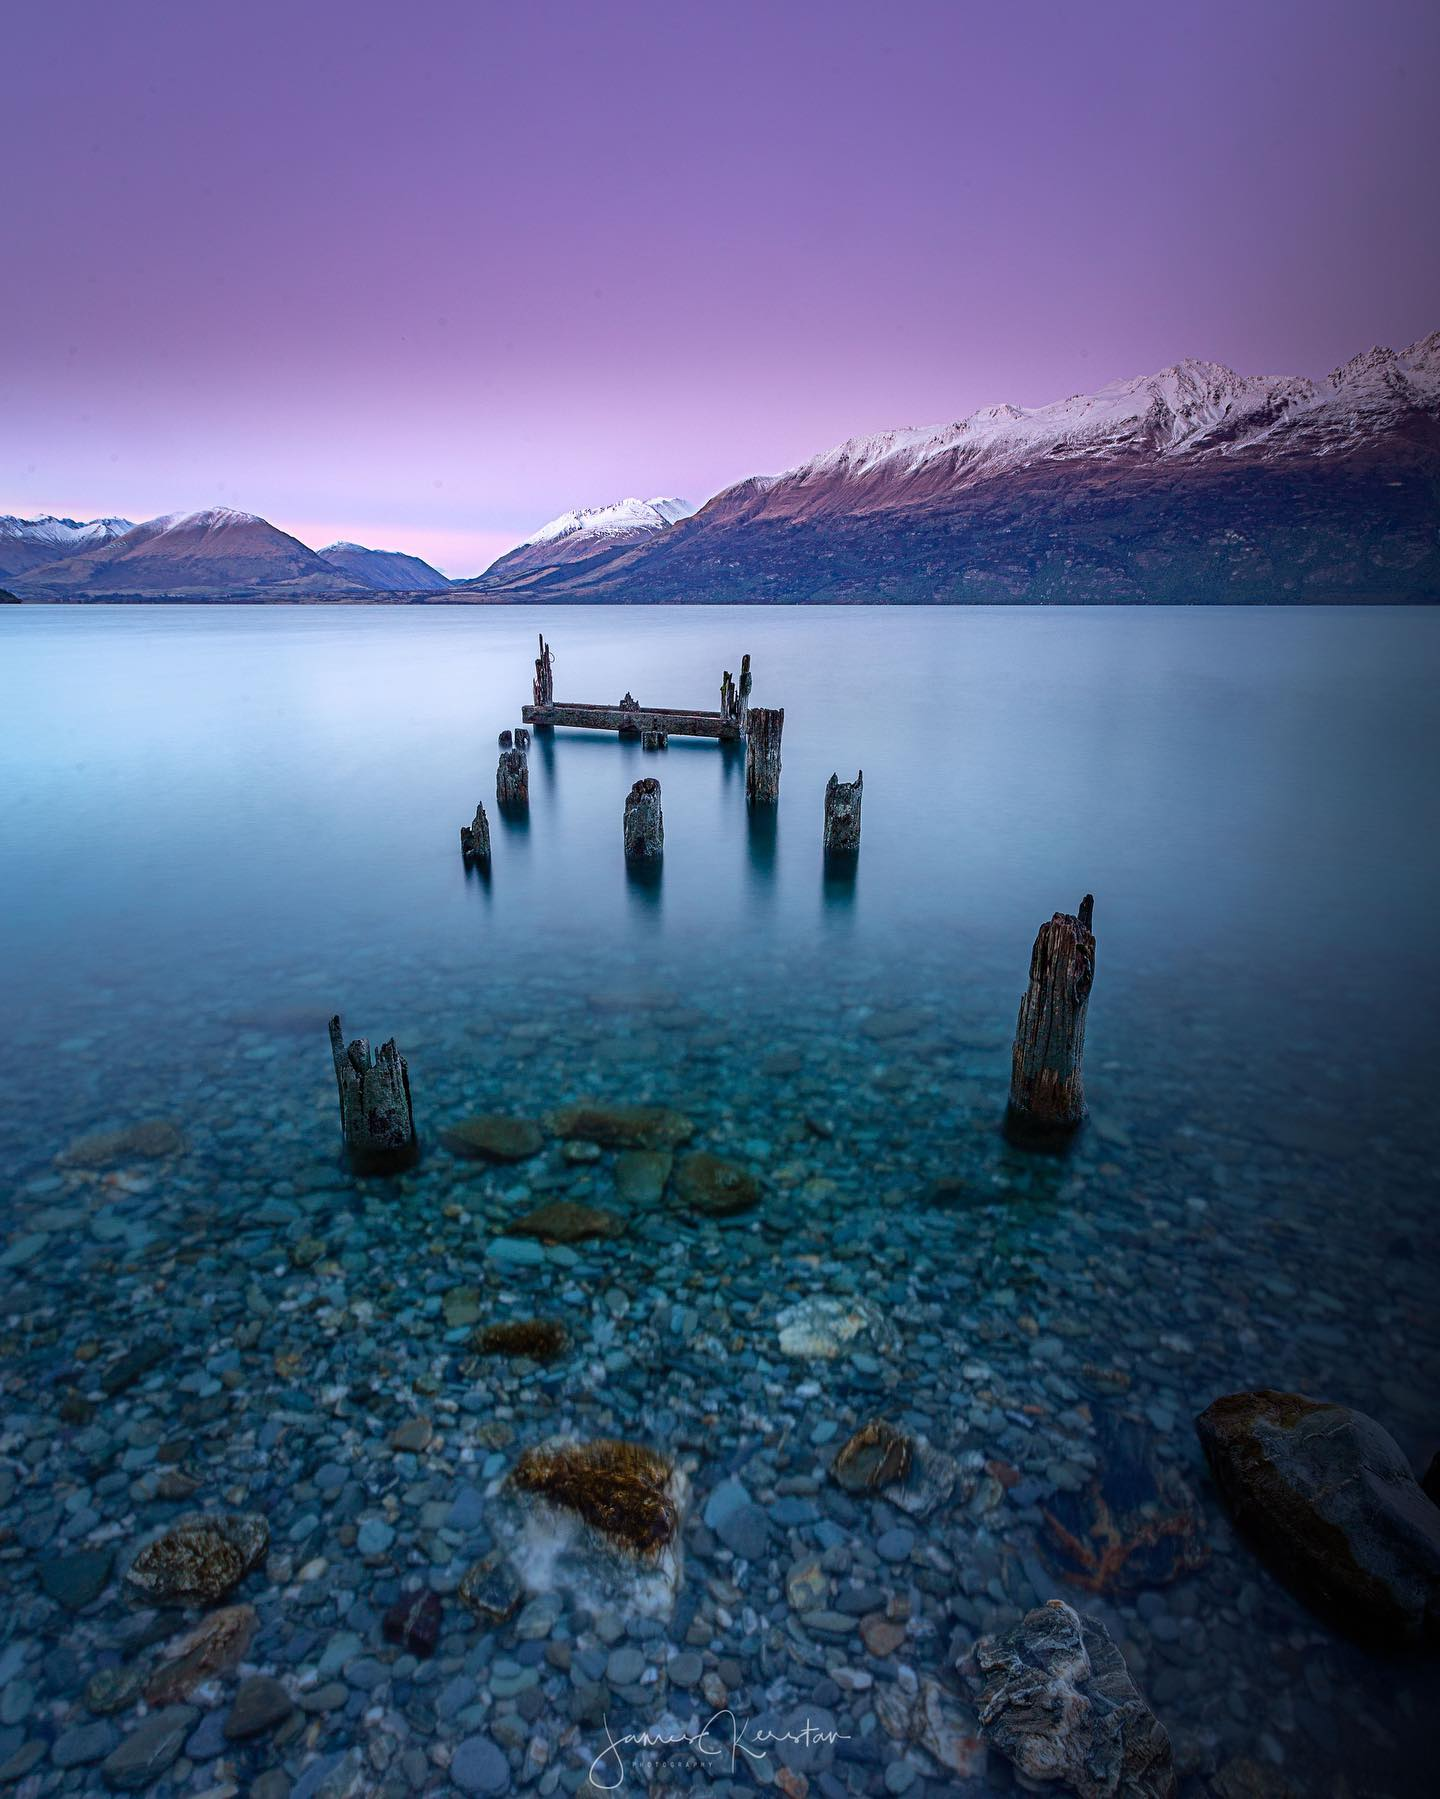 Old Glenorchy Jetty